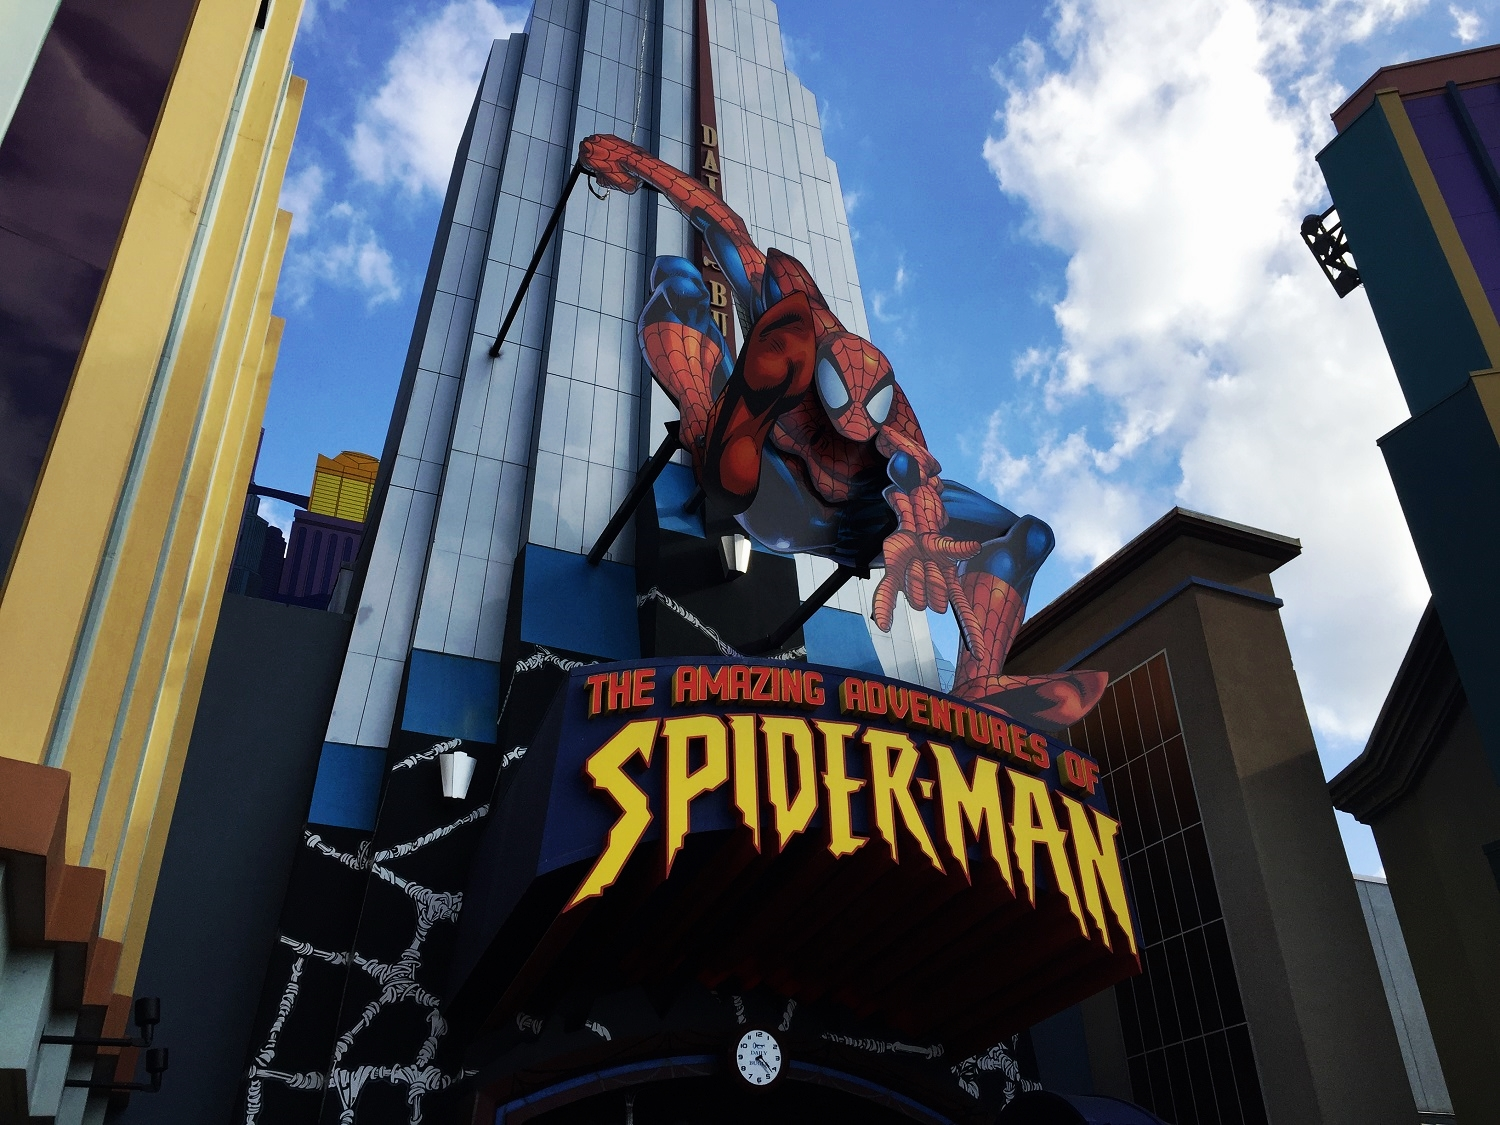 The Amazing Adventures of Spider-Man ride entrance.